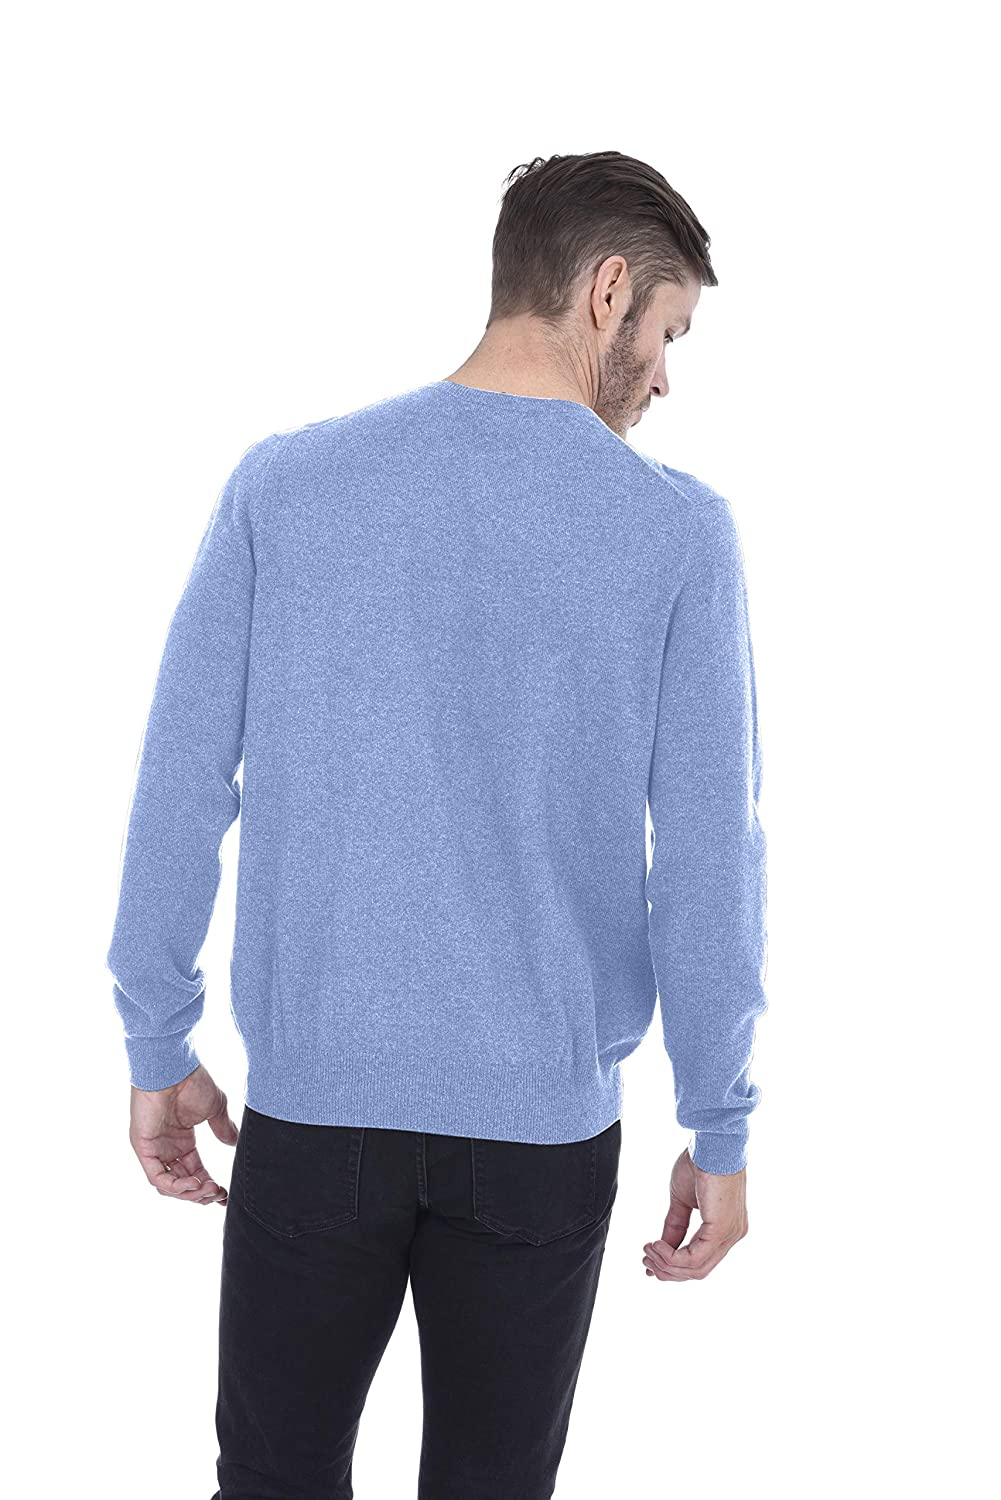 Cashmeren Mens Basic Crewneck Sweater 100/% Pure Cashmere Long Sleeve Round Neck Pullover